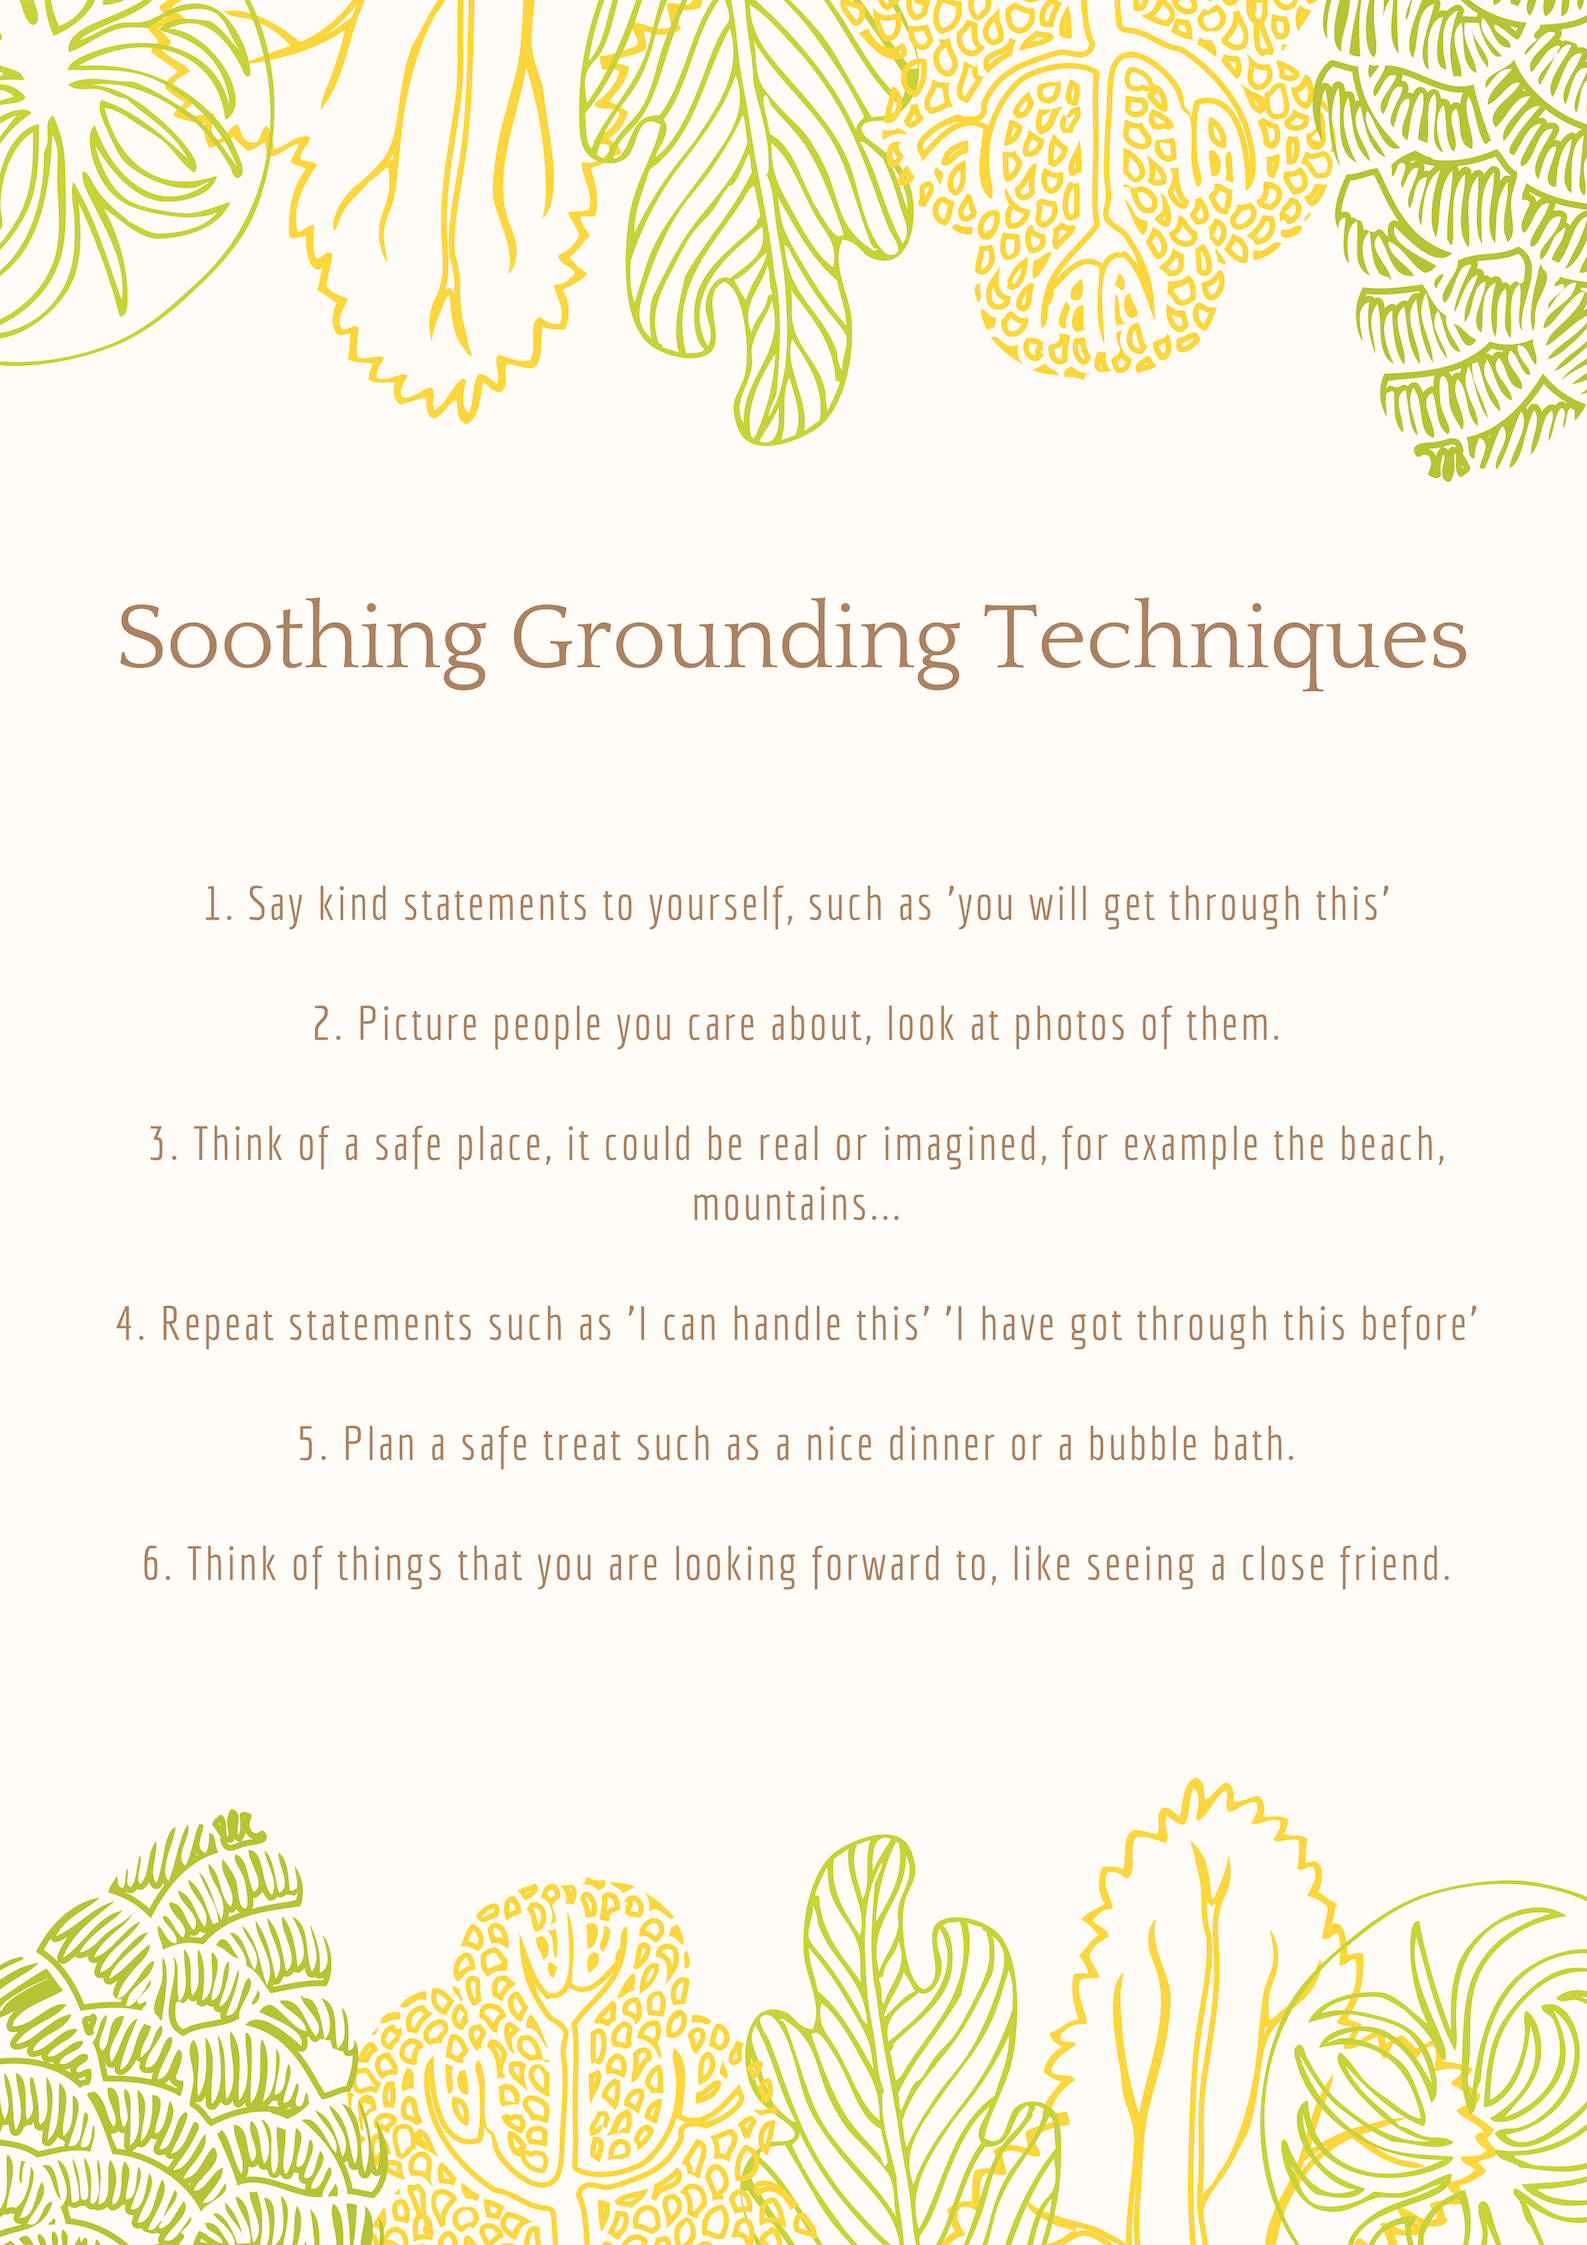 Soothing Grounding Techniques Poster